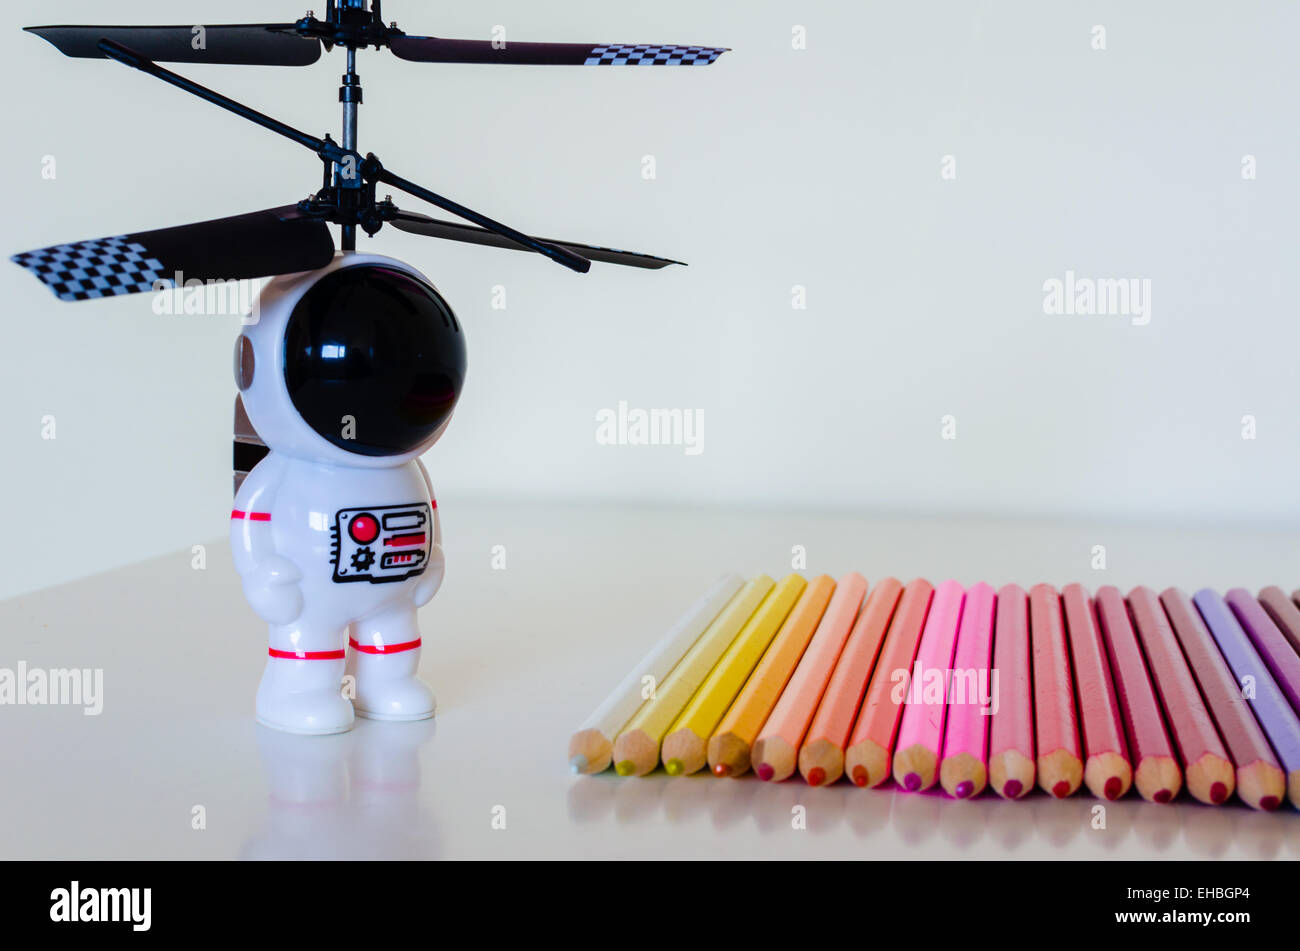 A child's toy spaceman looks towards a set of coloring crayons laid in a row on a white surface. There is some reflected detail. Stock Photo